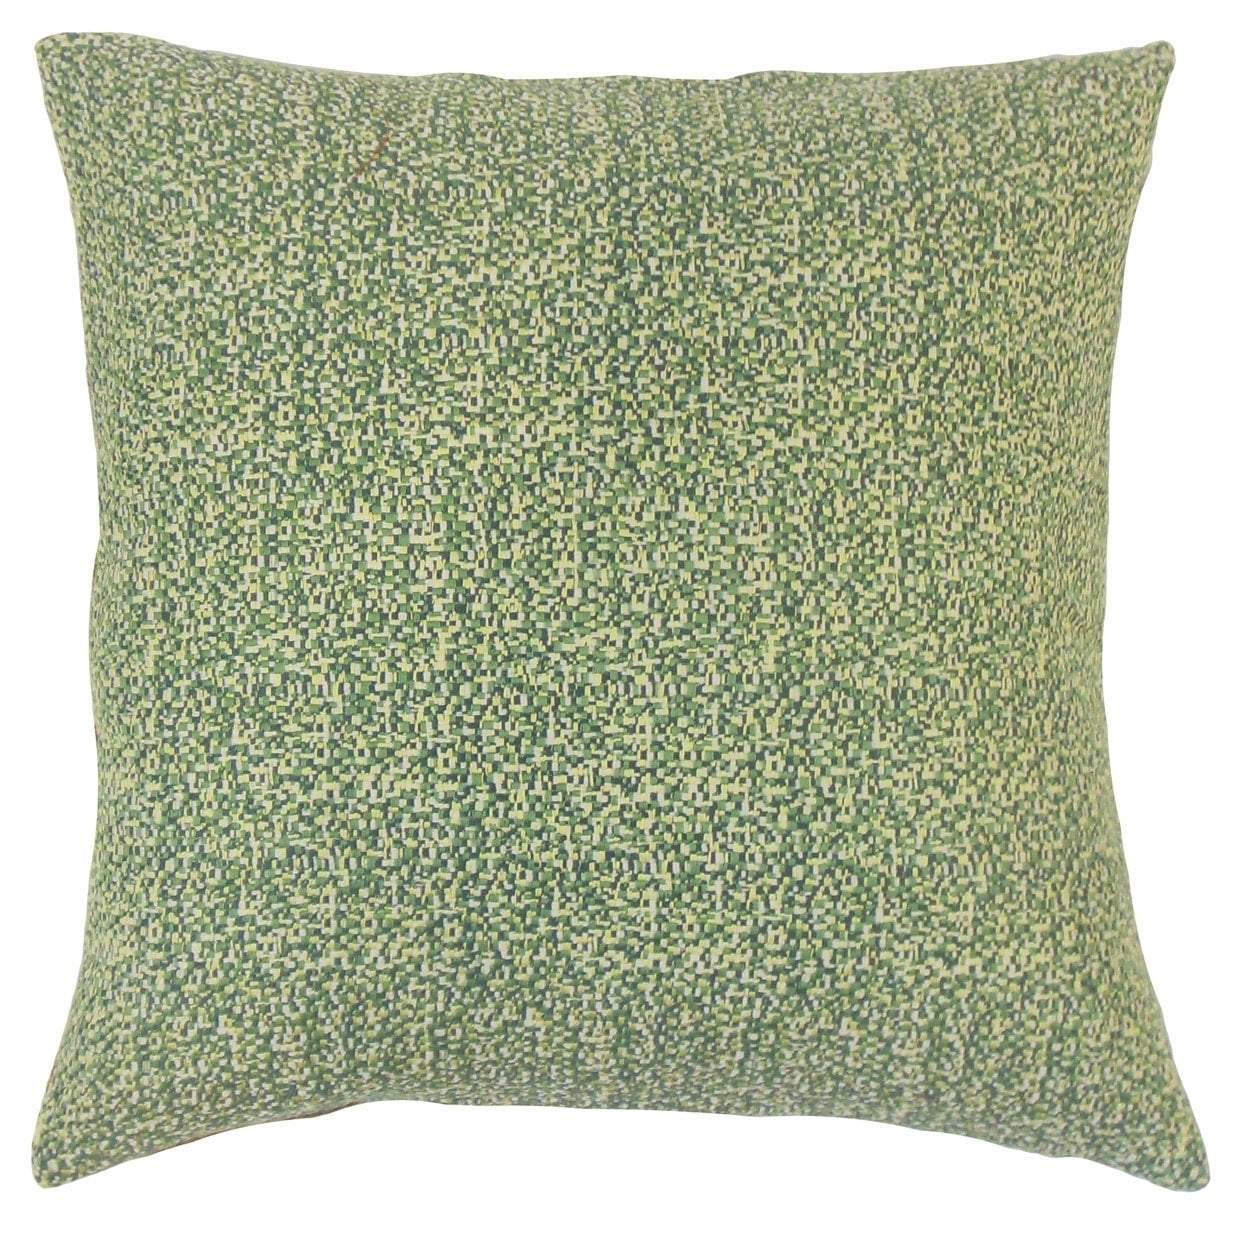 Bowles Throw Pillow Cover